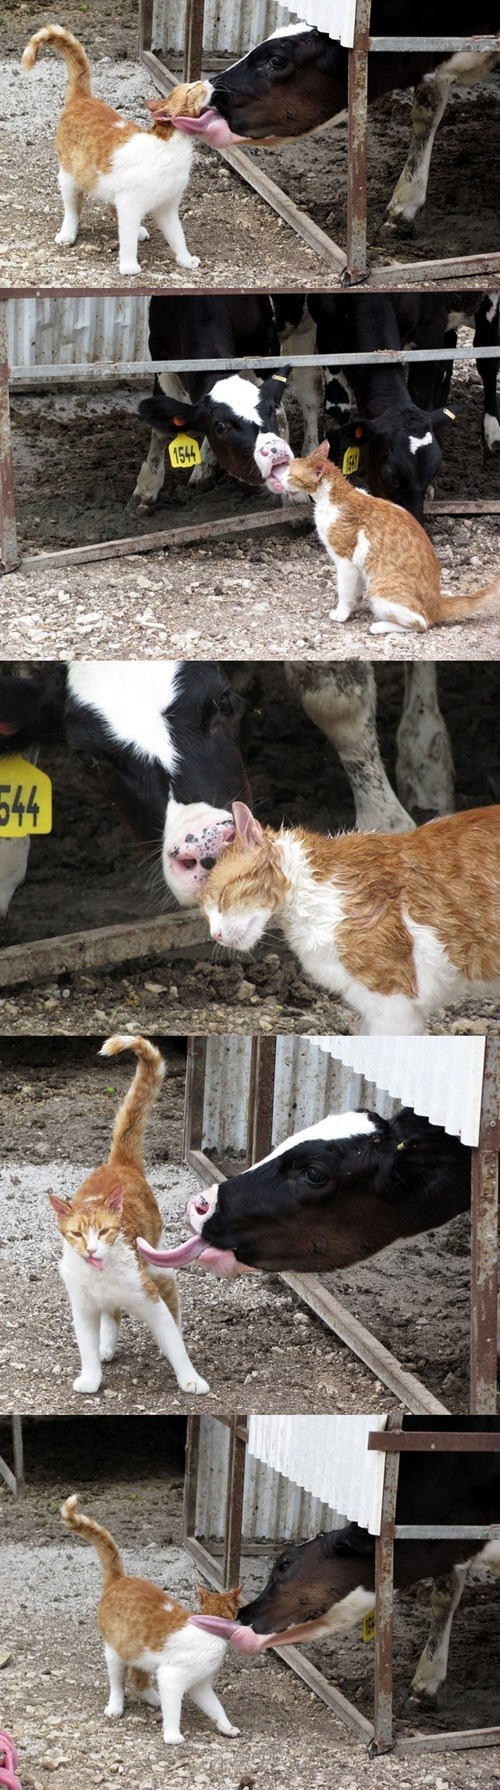 Cats cute cows kisses friendship - 7891200768